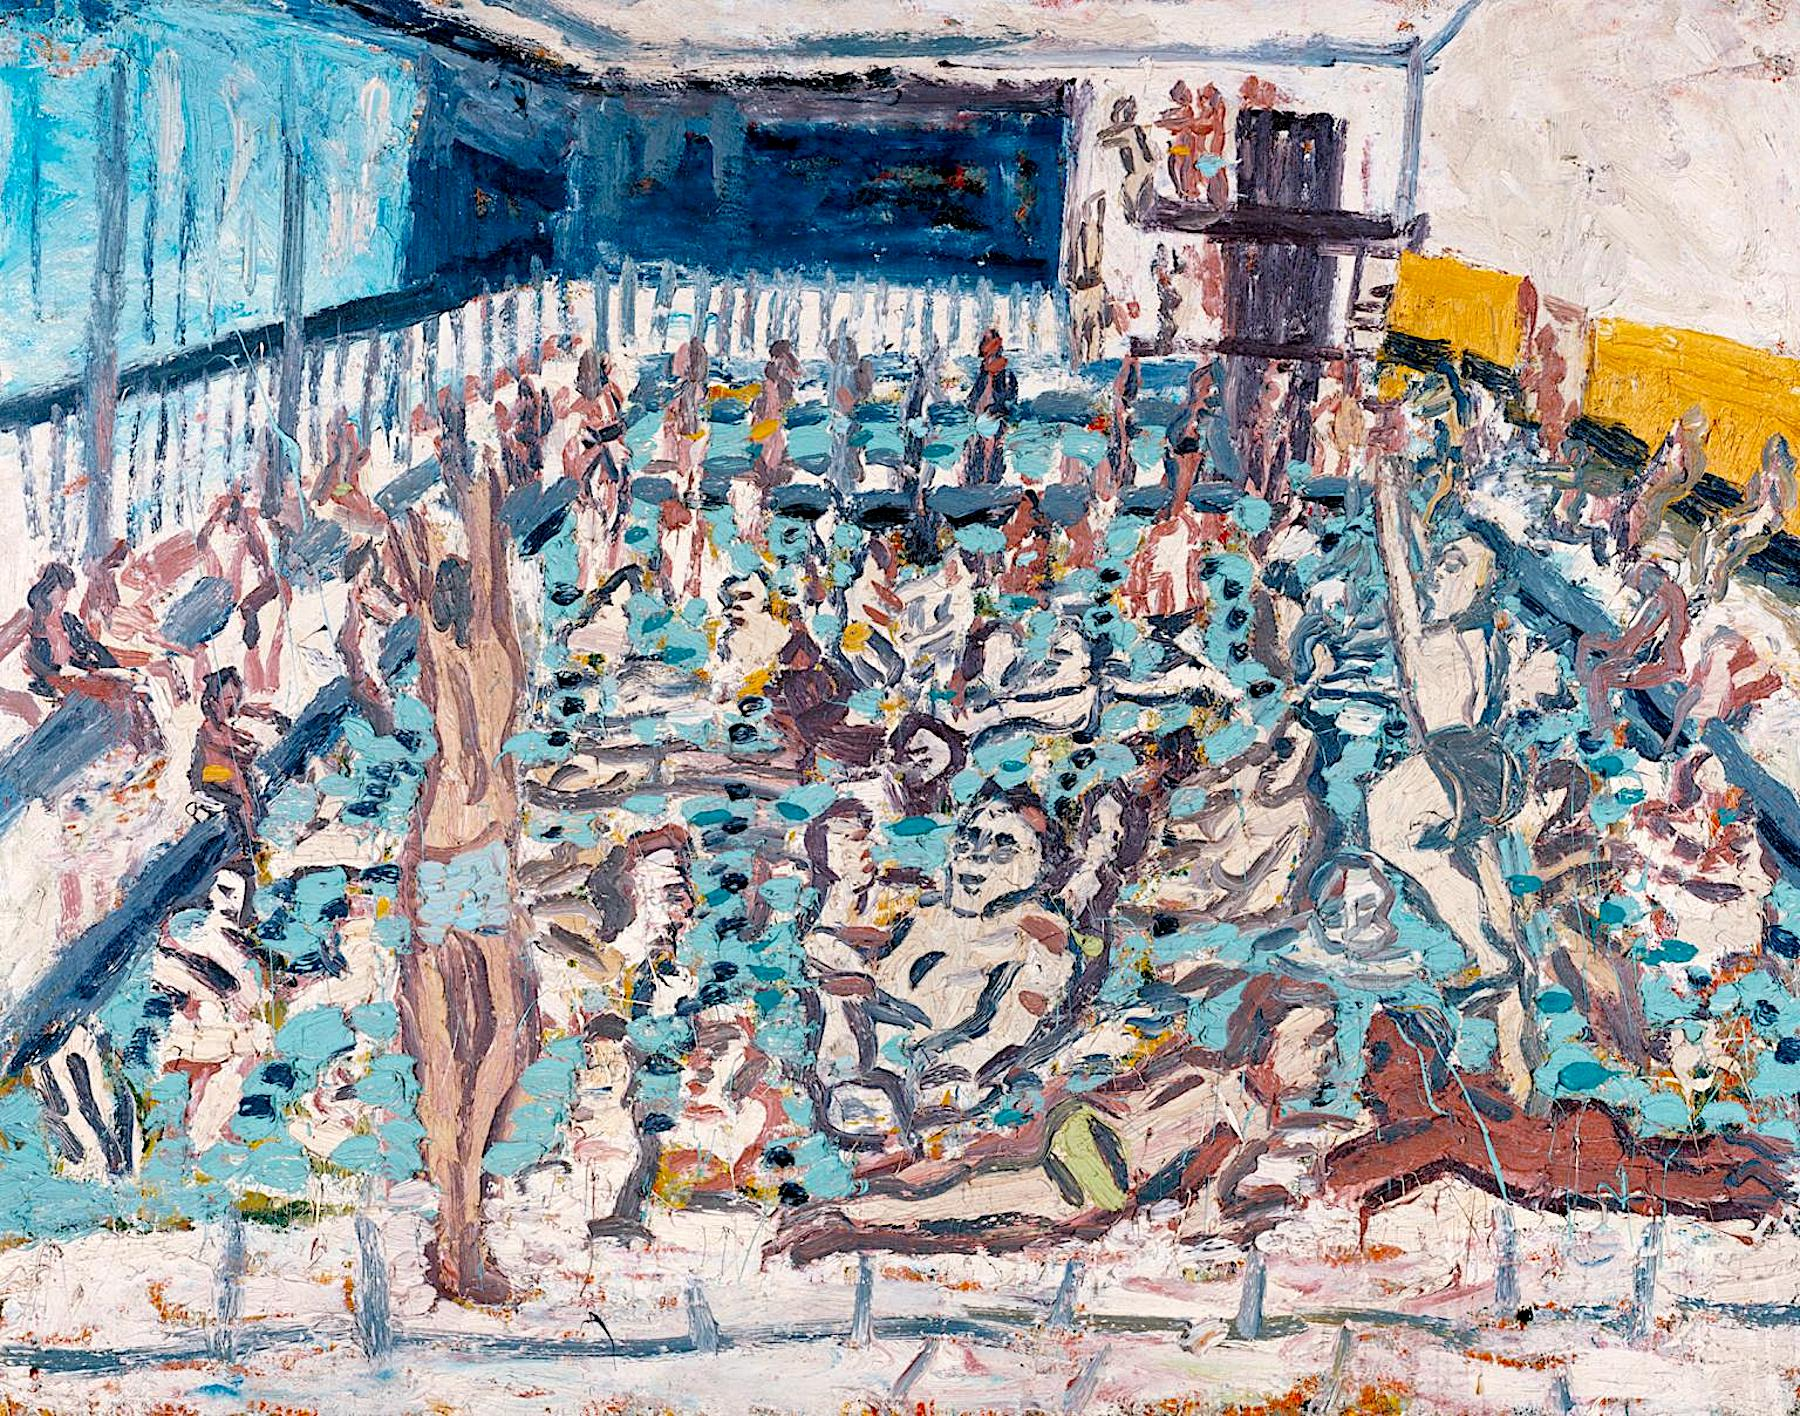 Children's Swimming Pool, Autumn Afternoon 1971 by Leon Kossoff born 1926